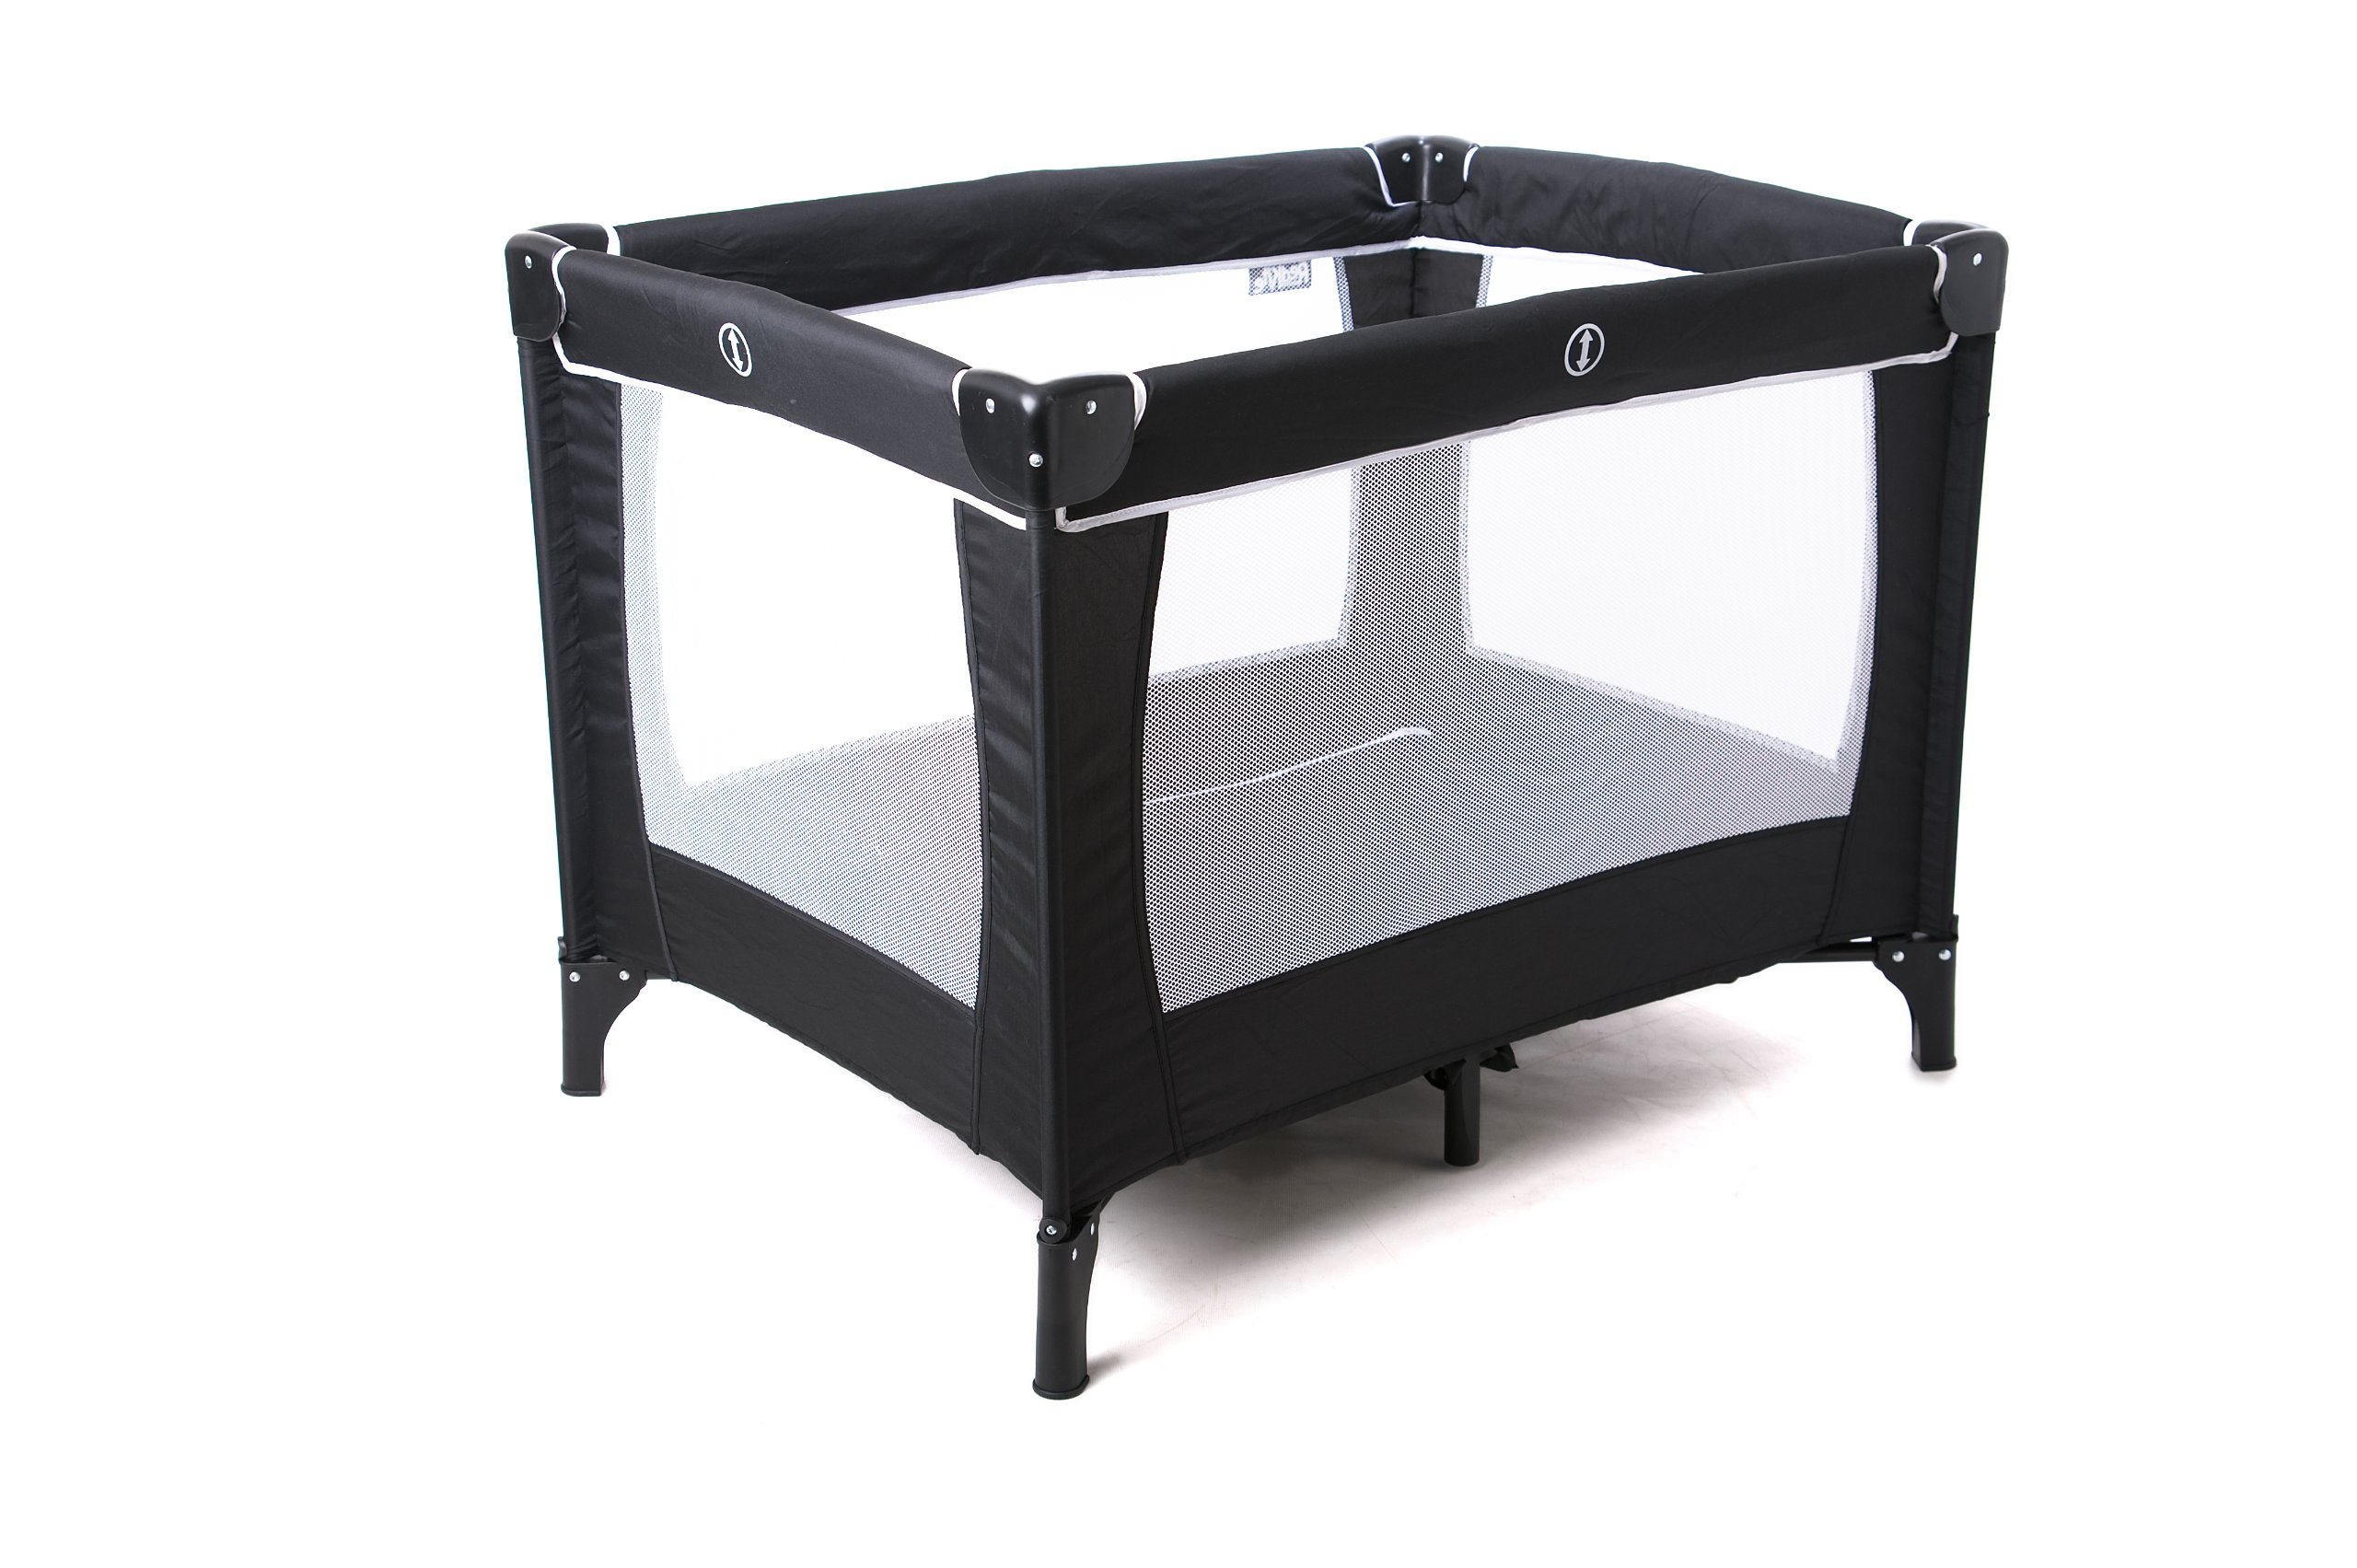 red kite sleeptight travel cot padded rails safety tested. Black Bedroom Furniture Sets. Home Design Ideas